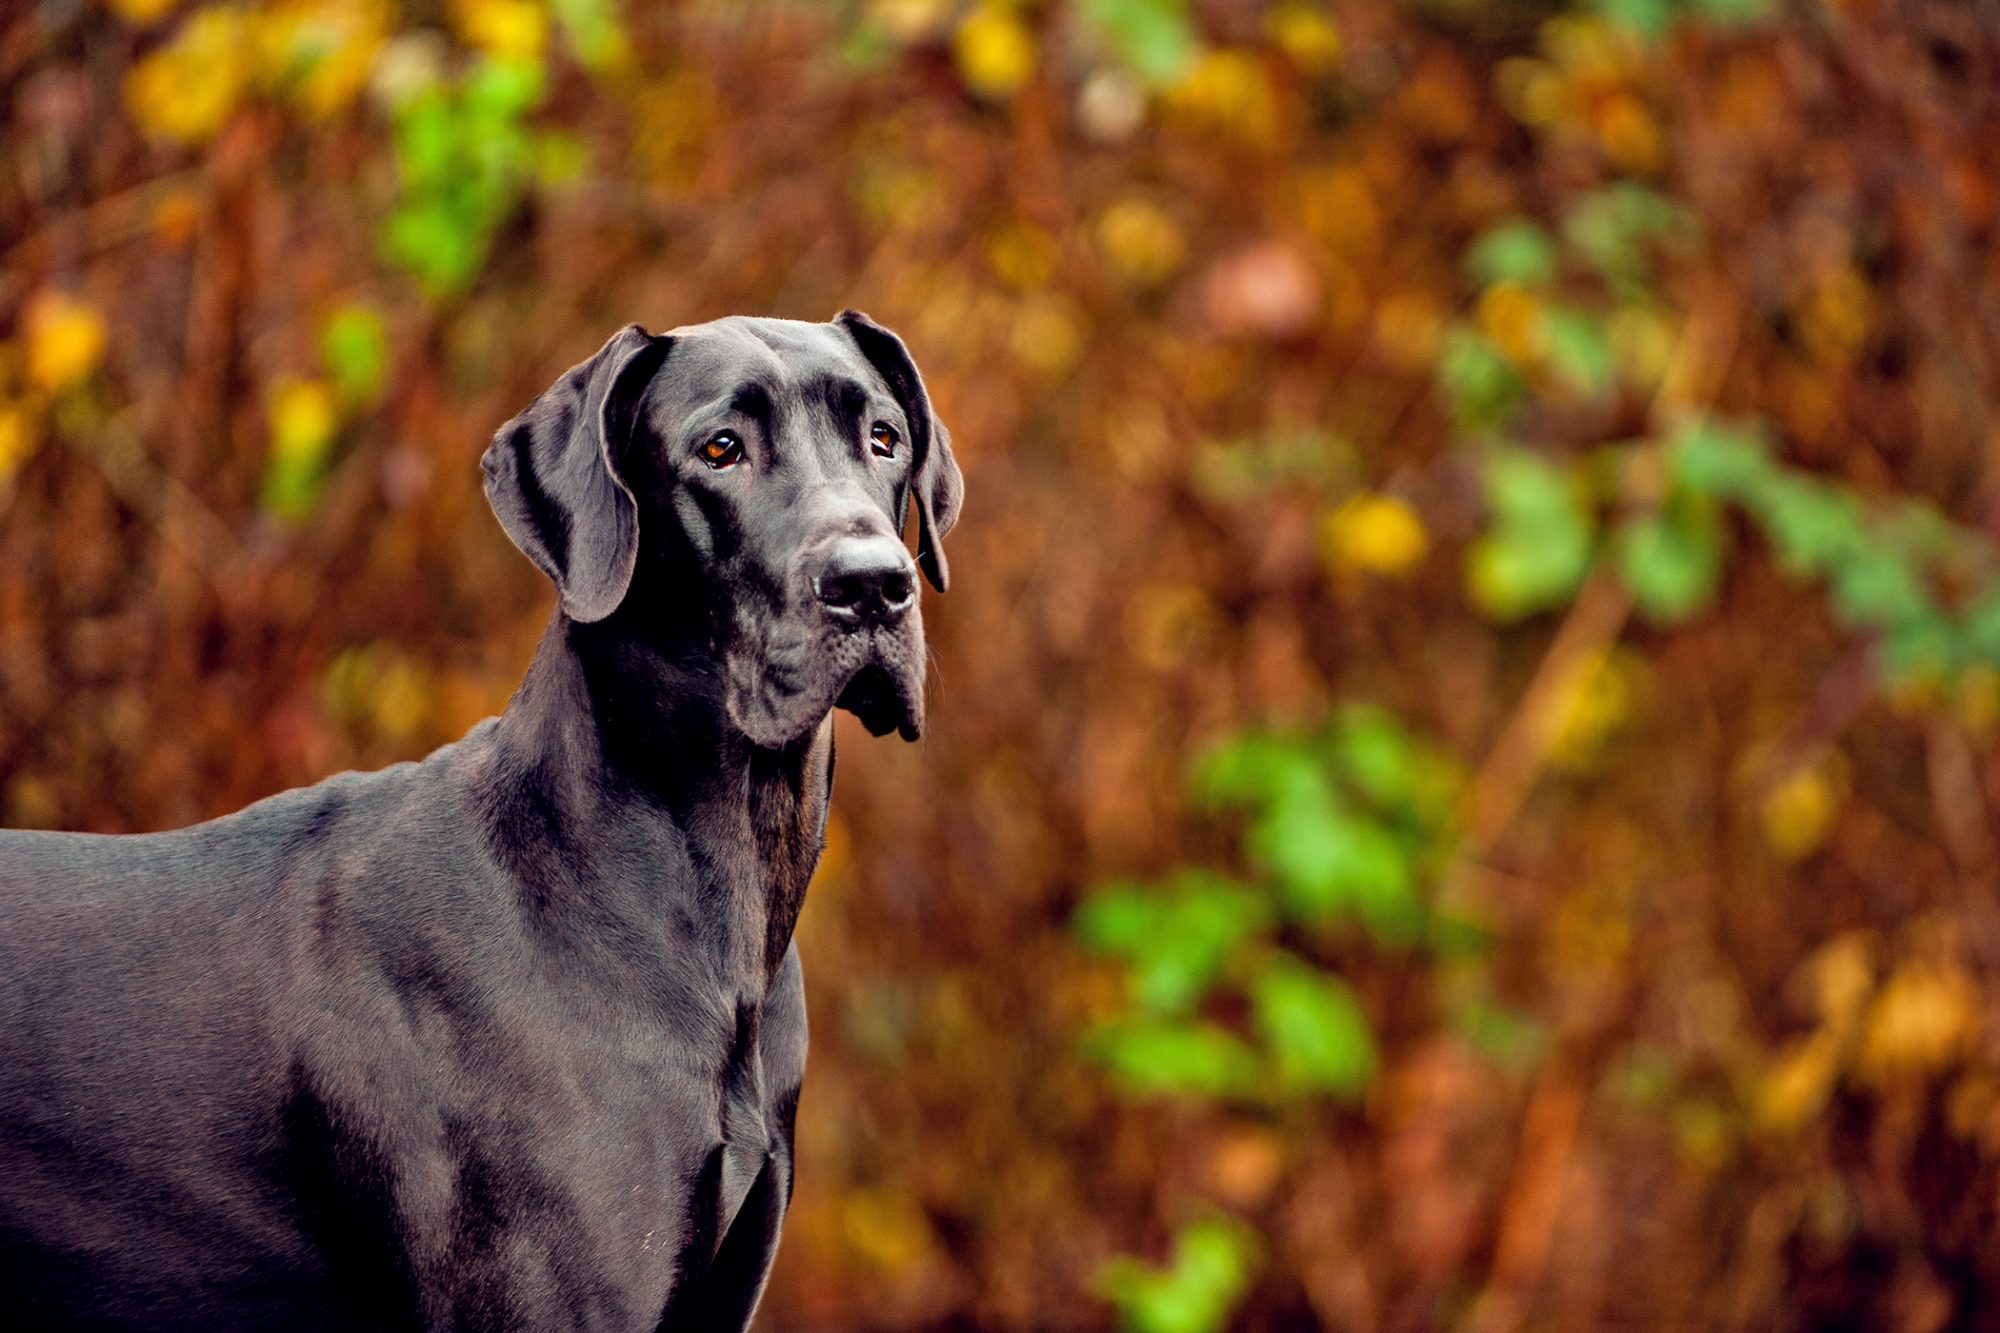 Black Great Dane standing in front of trees